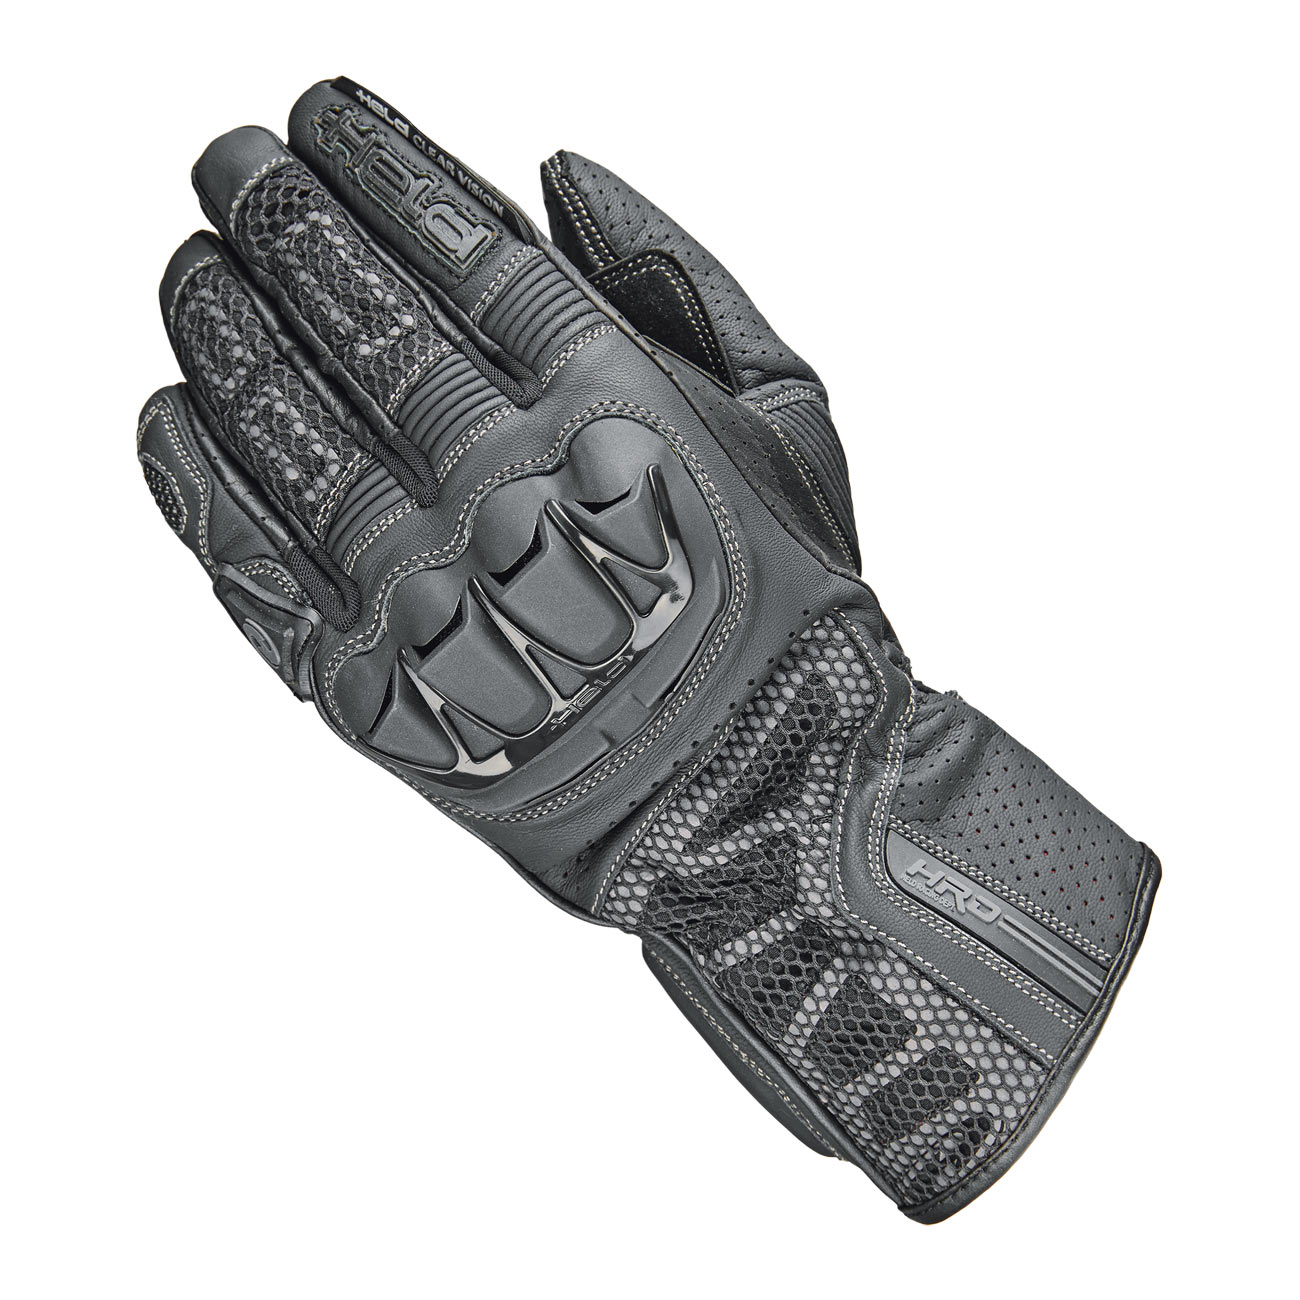 Held Air Stream 3.0 Long Guantes Motorista Largos Negro 10